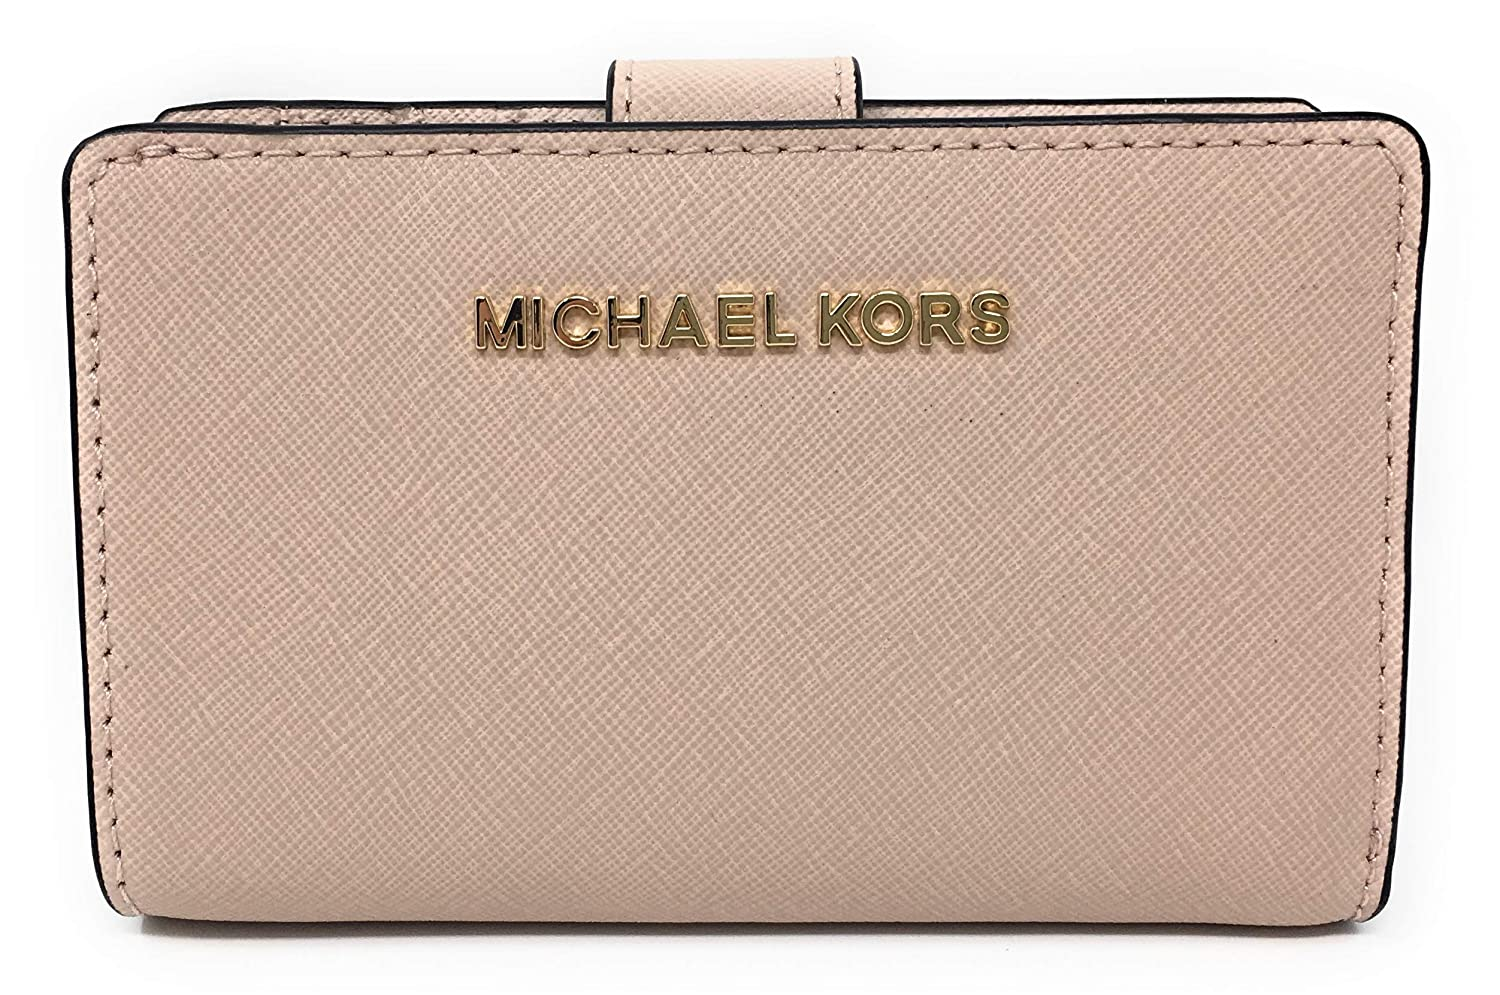 9802714ec9f Michael Kors Jet Set Travel Saffiano Leather Bifold Zip Coin Wallet  (Ballet) at Amazon Women's Clothing store: